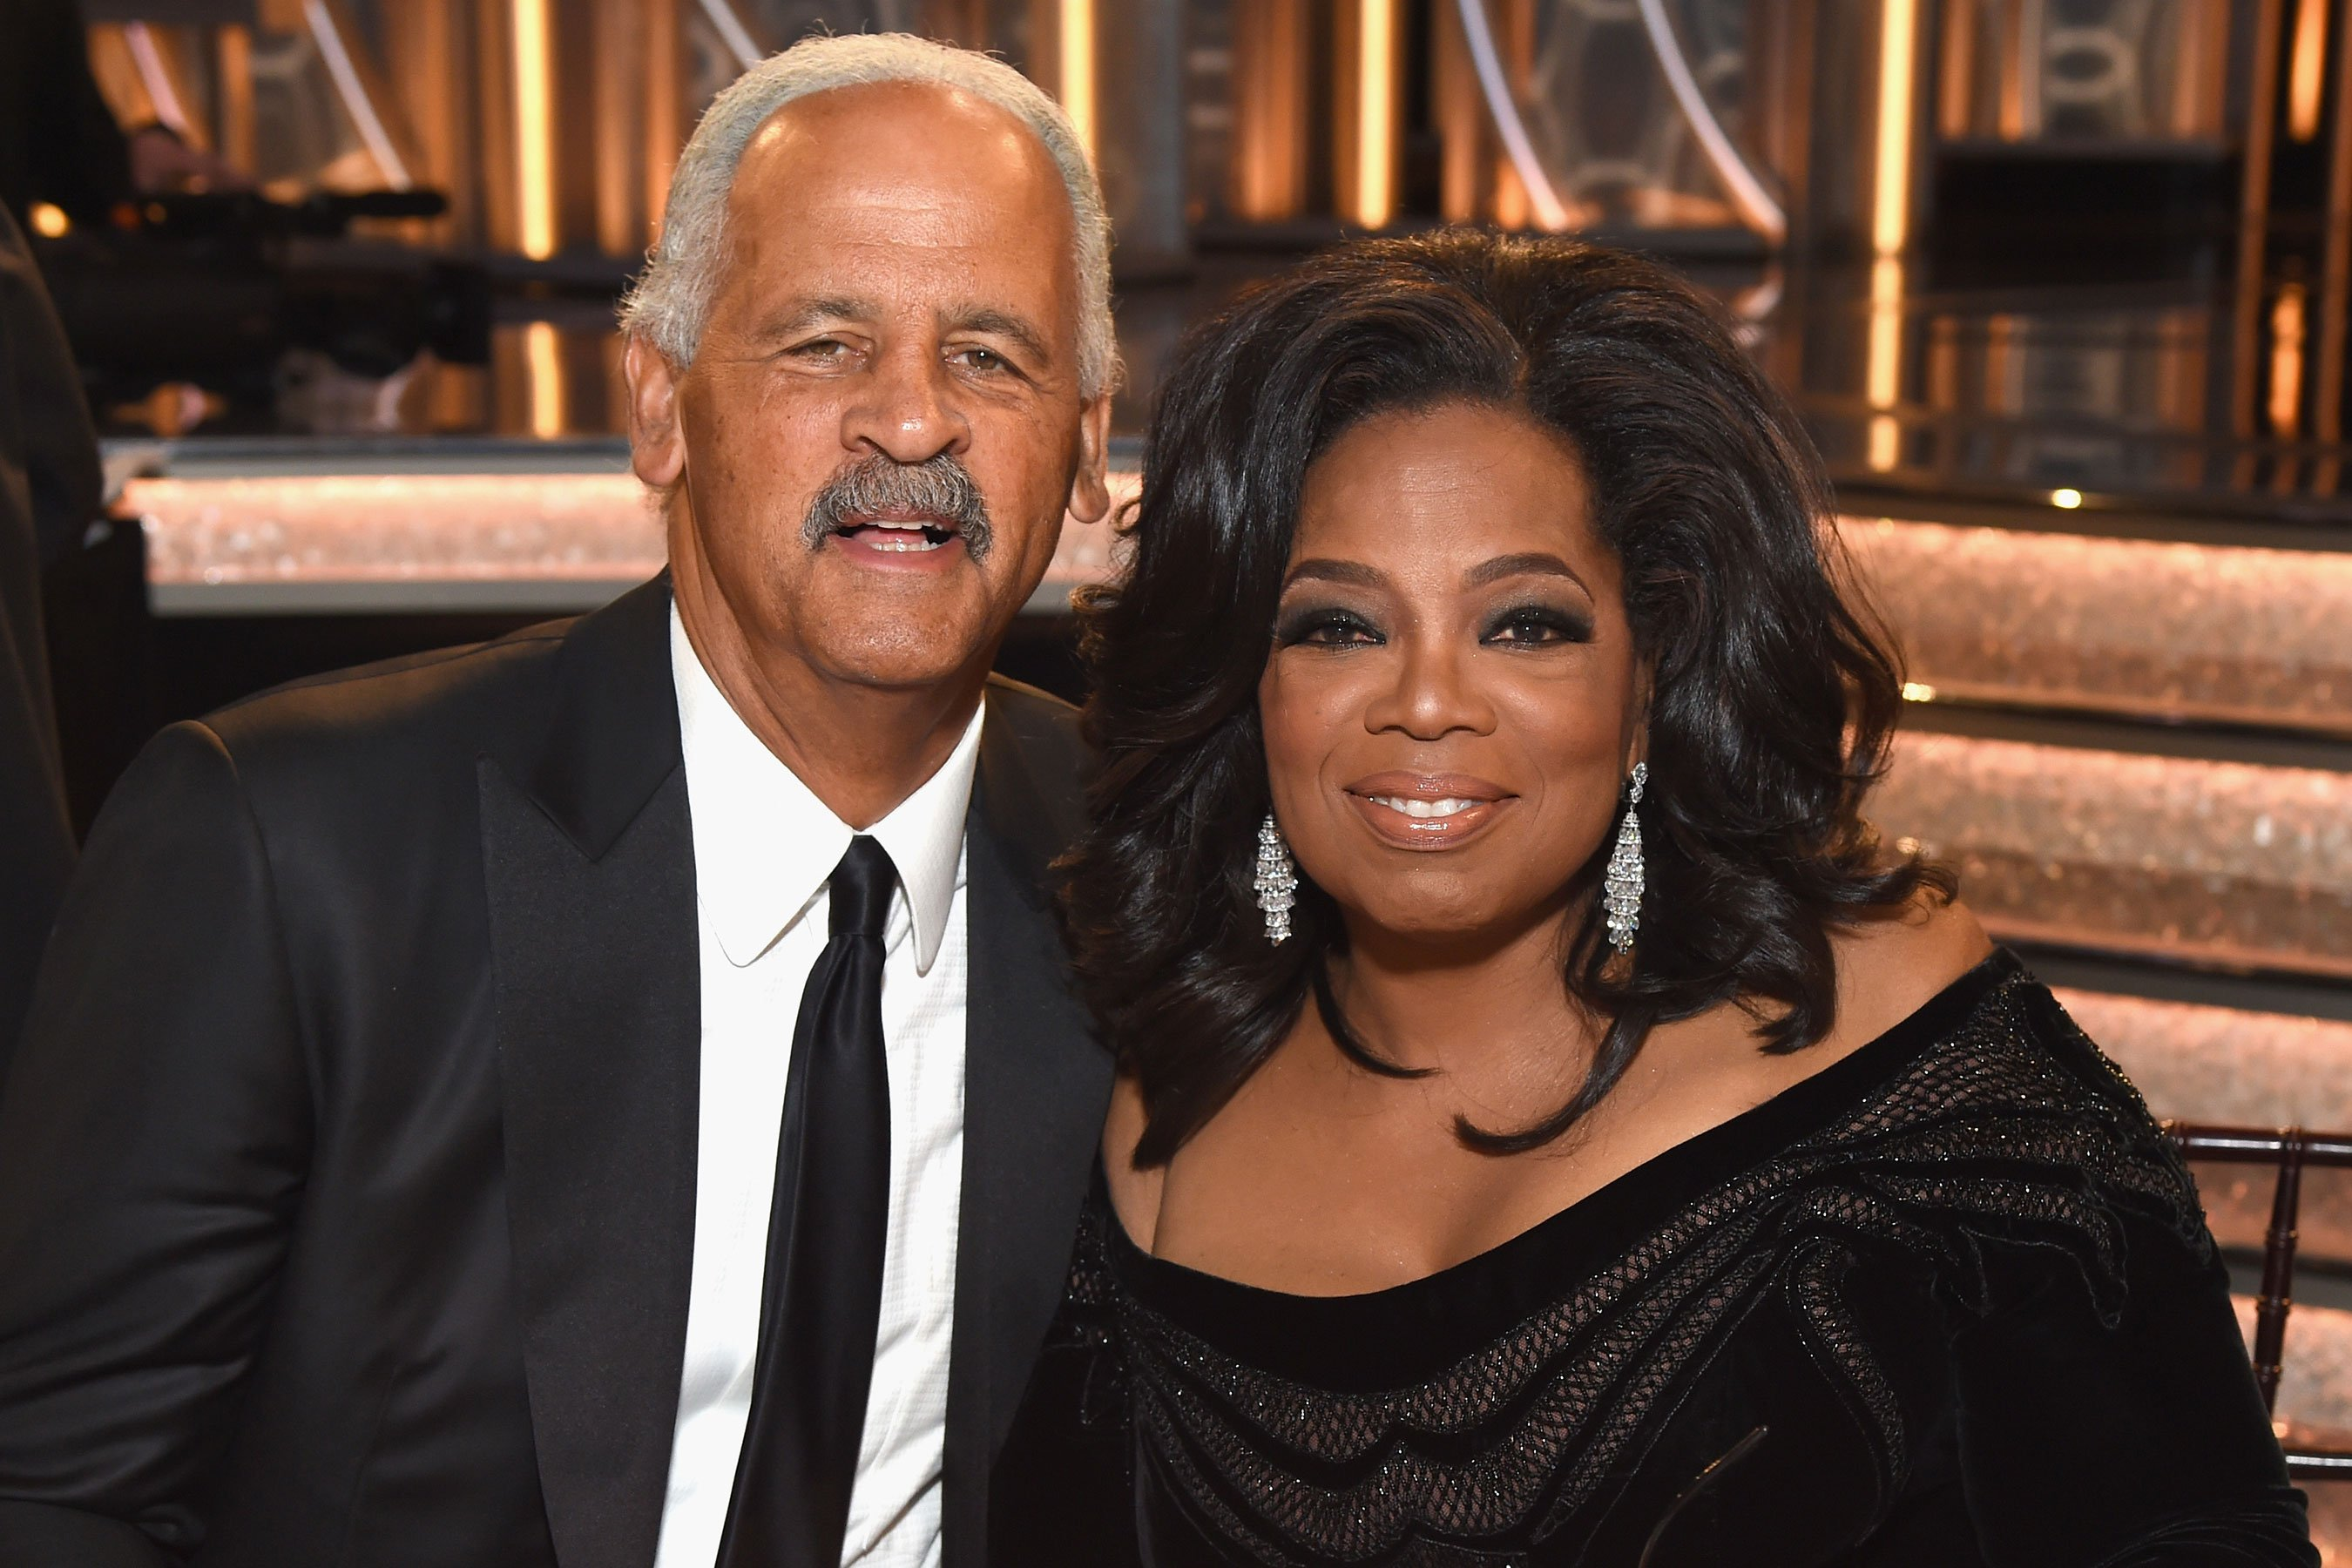 Oprah Winfrey's partner Stedman Graham says she would 'absolutely' run for president